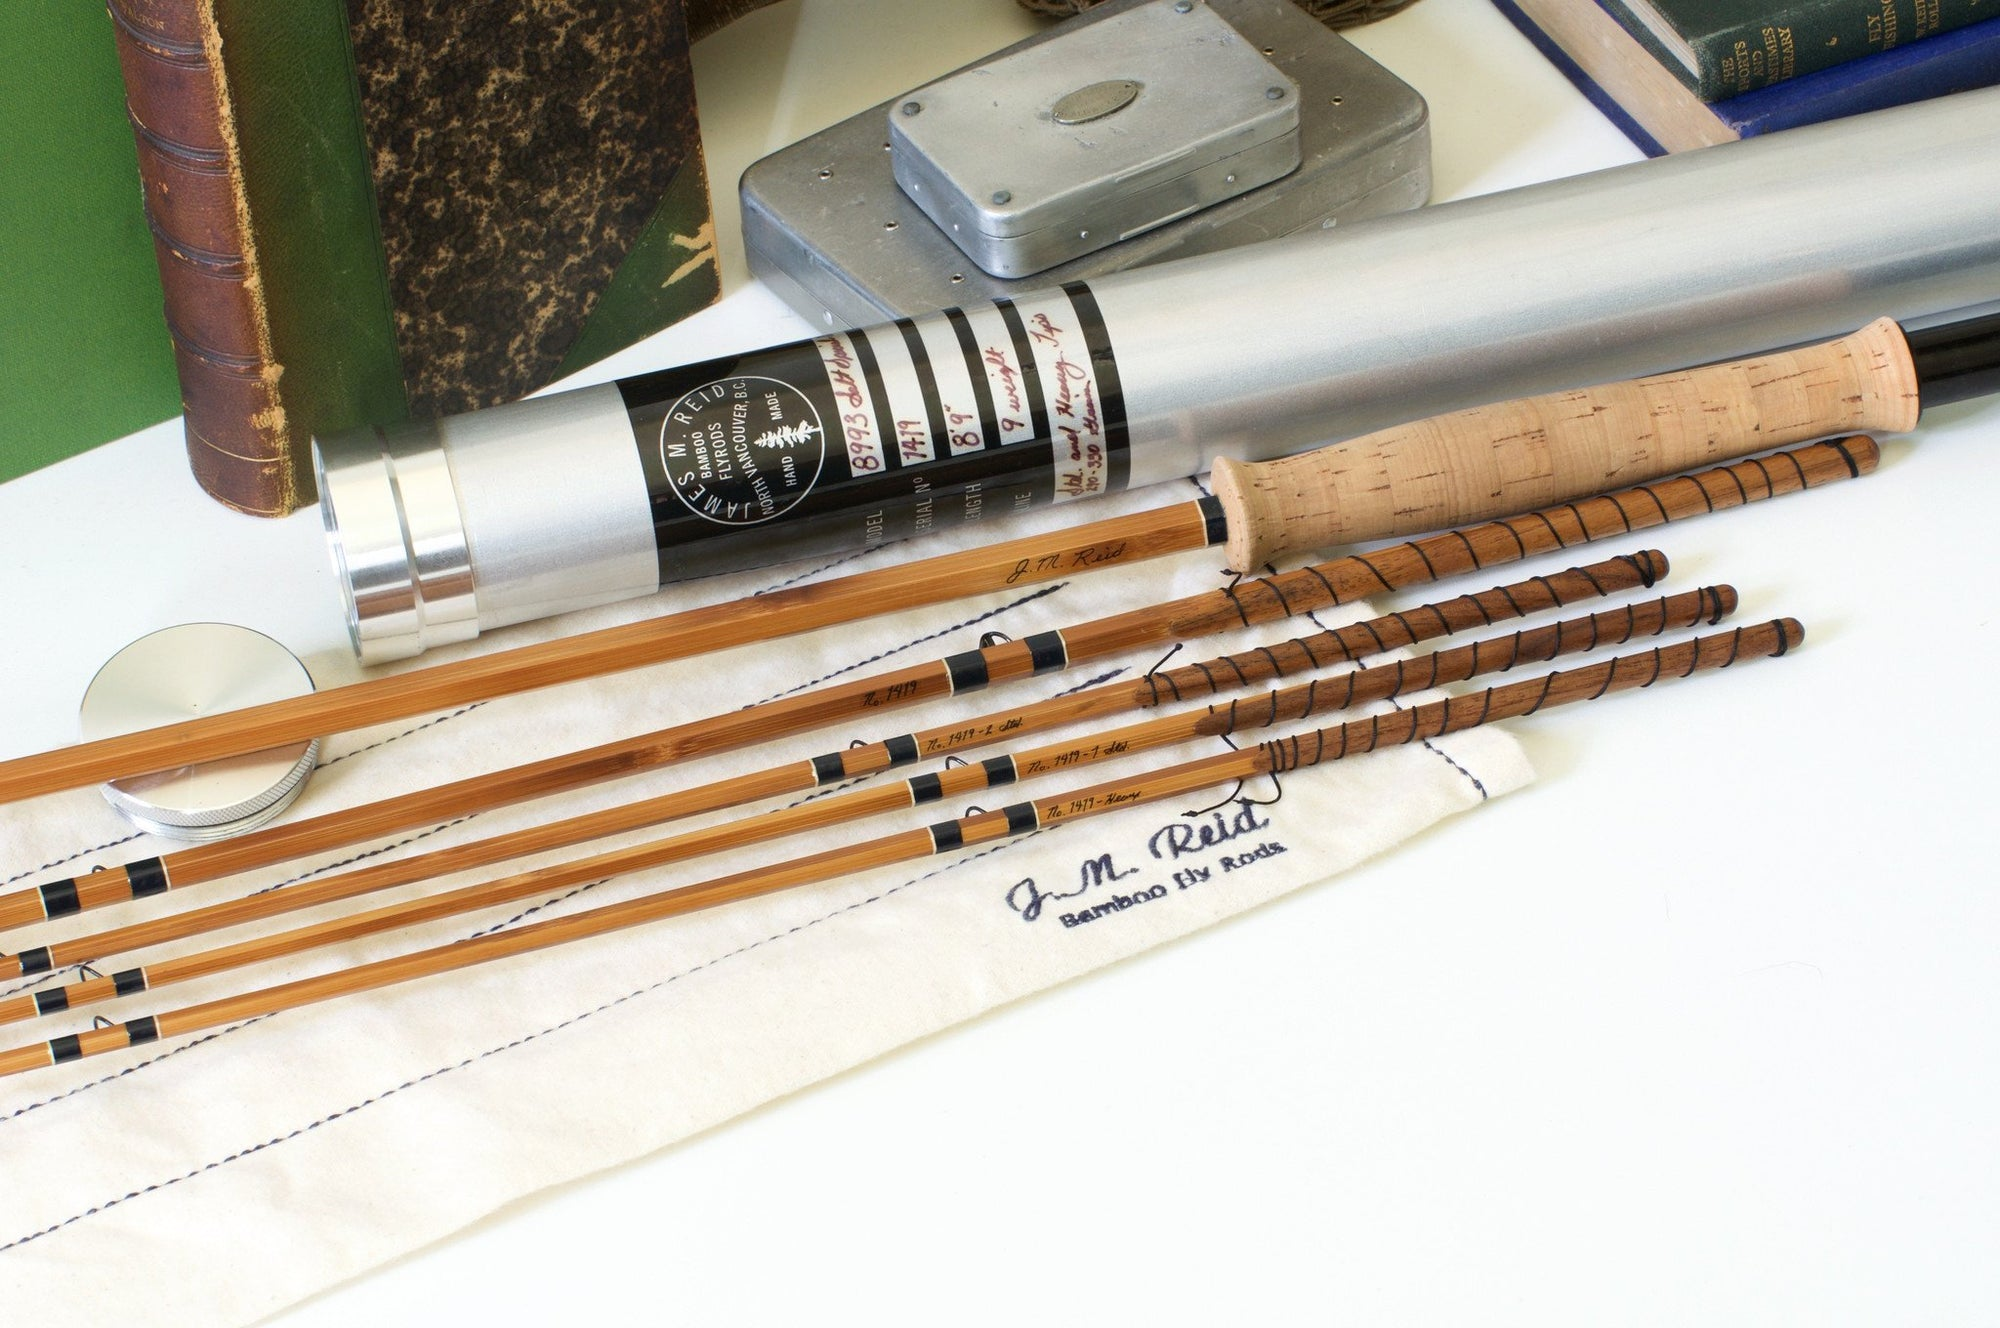 Reid, James - Salt Special H.D. 8'9 9wt Bamboo Rod